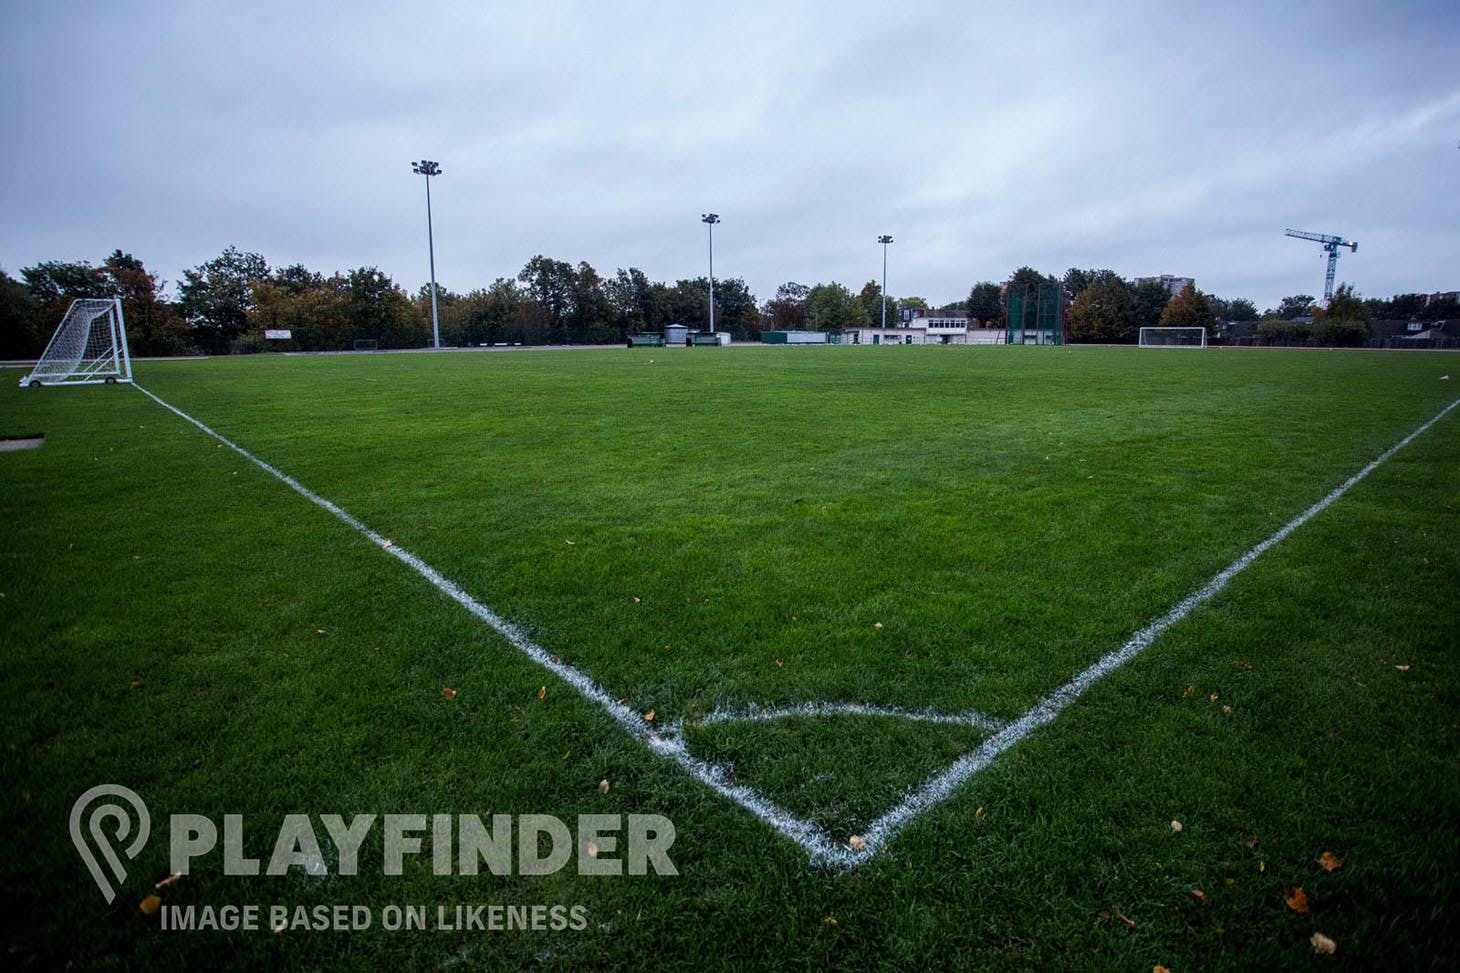 Wythenshawe Park 11 a side | Grass football pitch